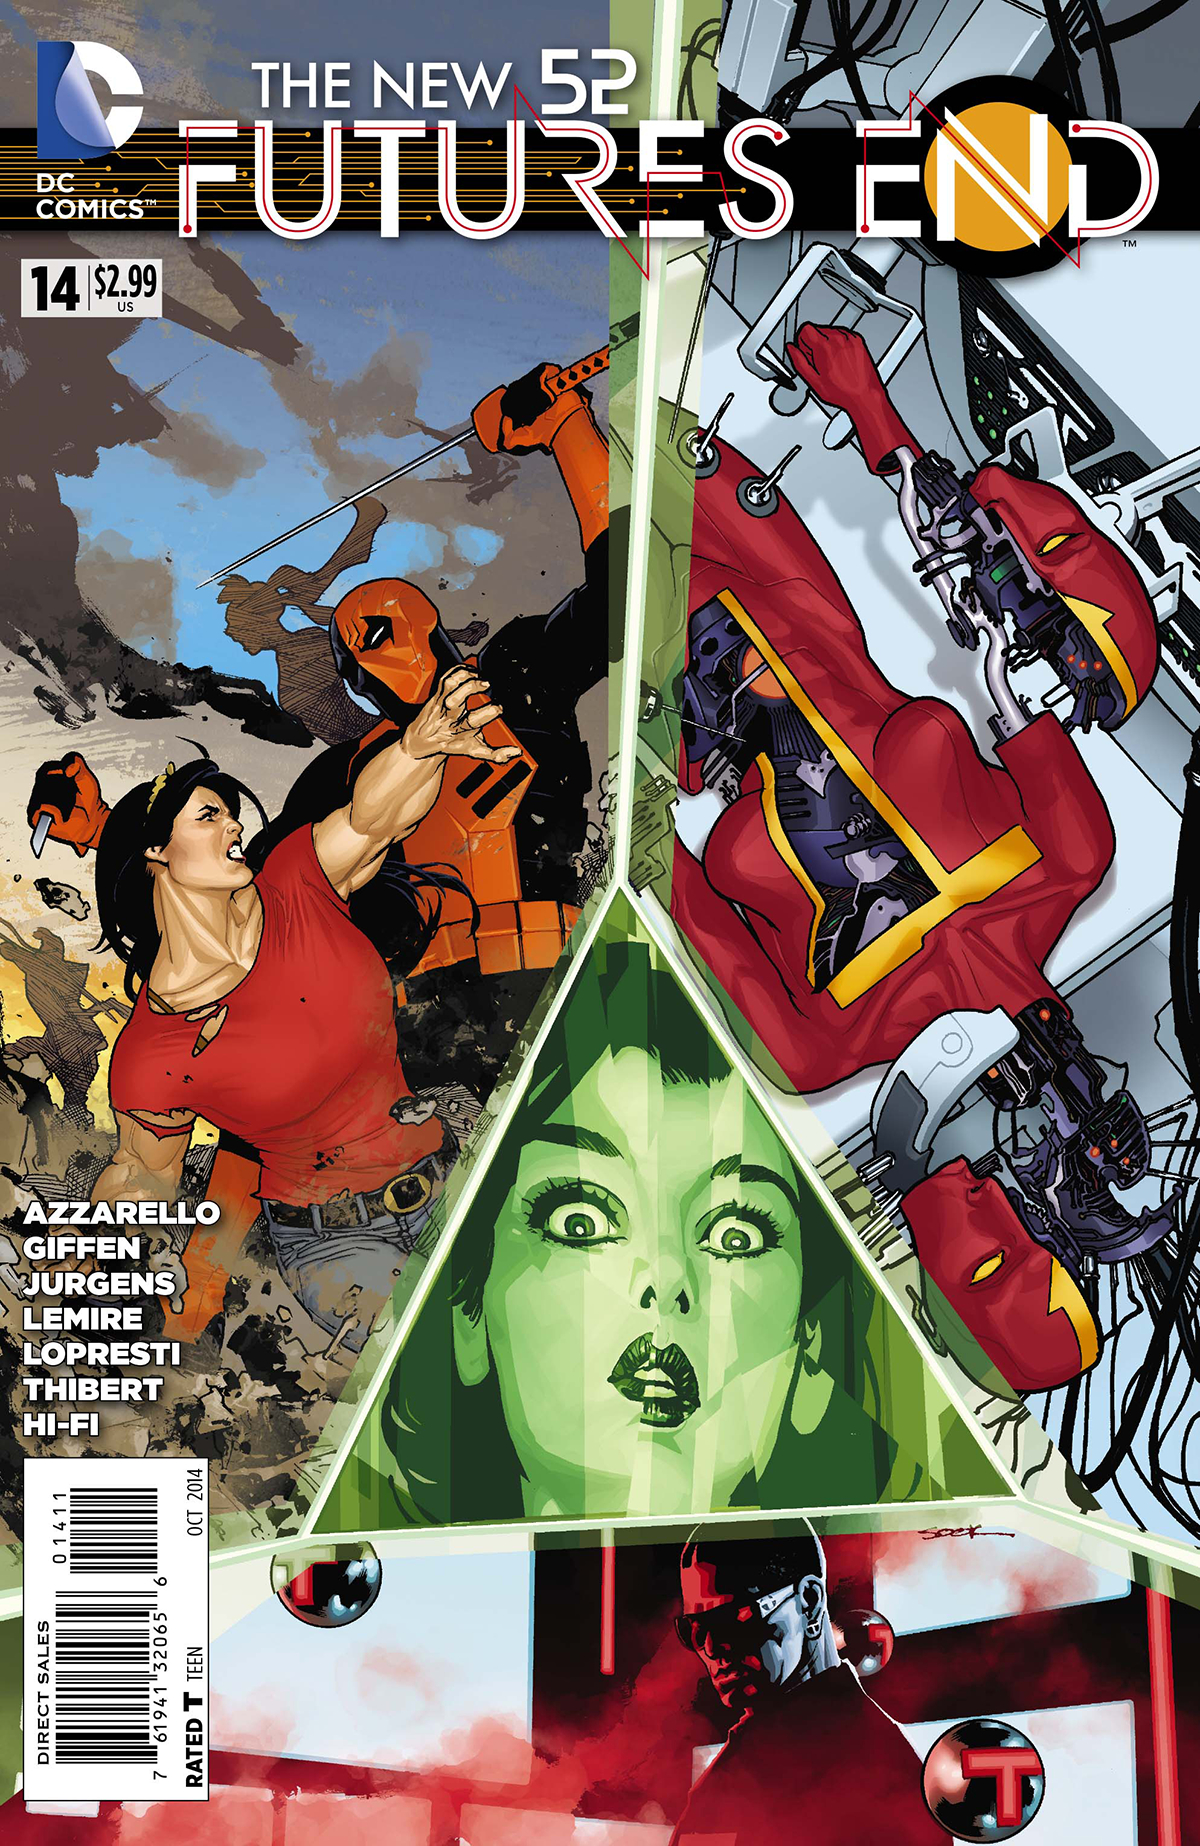 NEW 52 FUTURES END #14